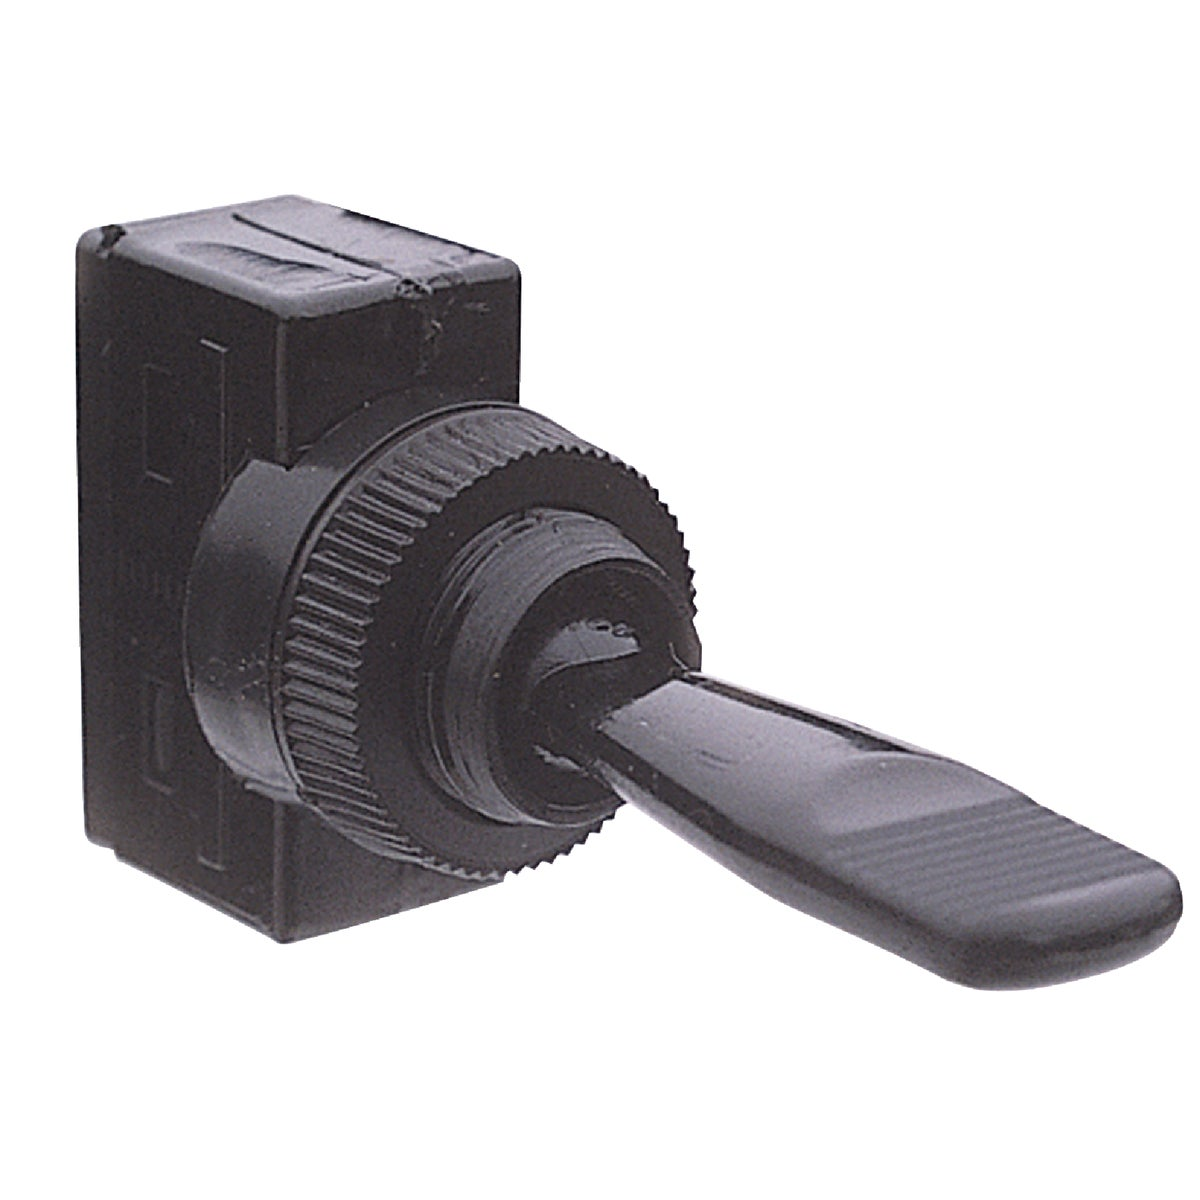 MOMENTARY SWITCH - 40130 by G B Electrical Inc